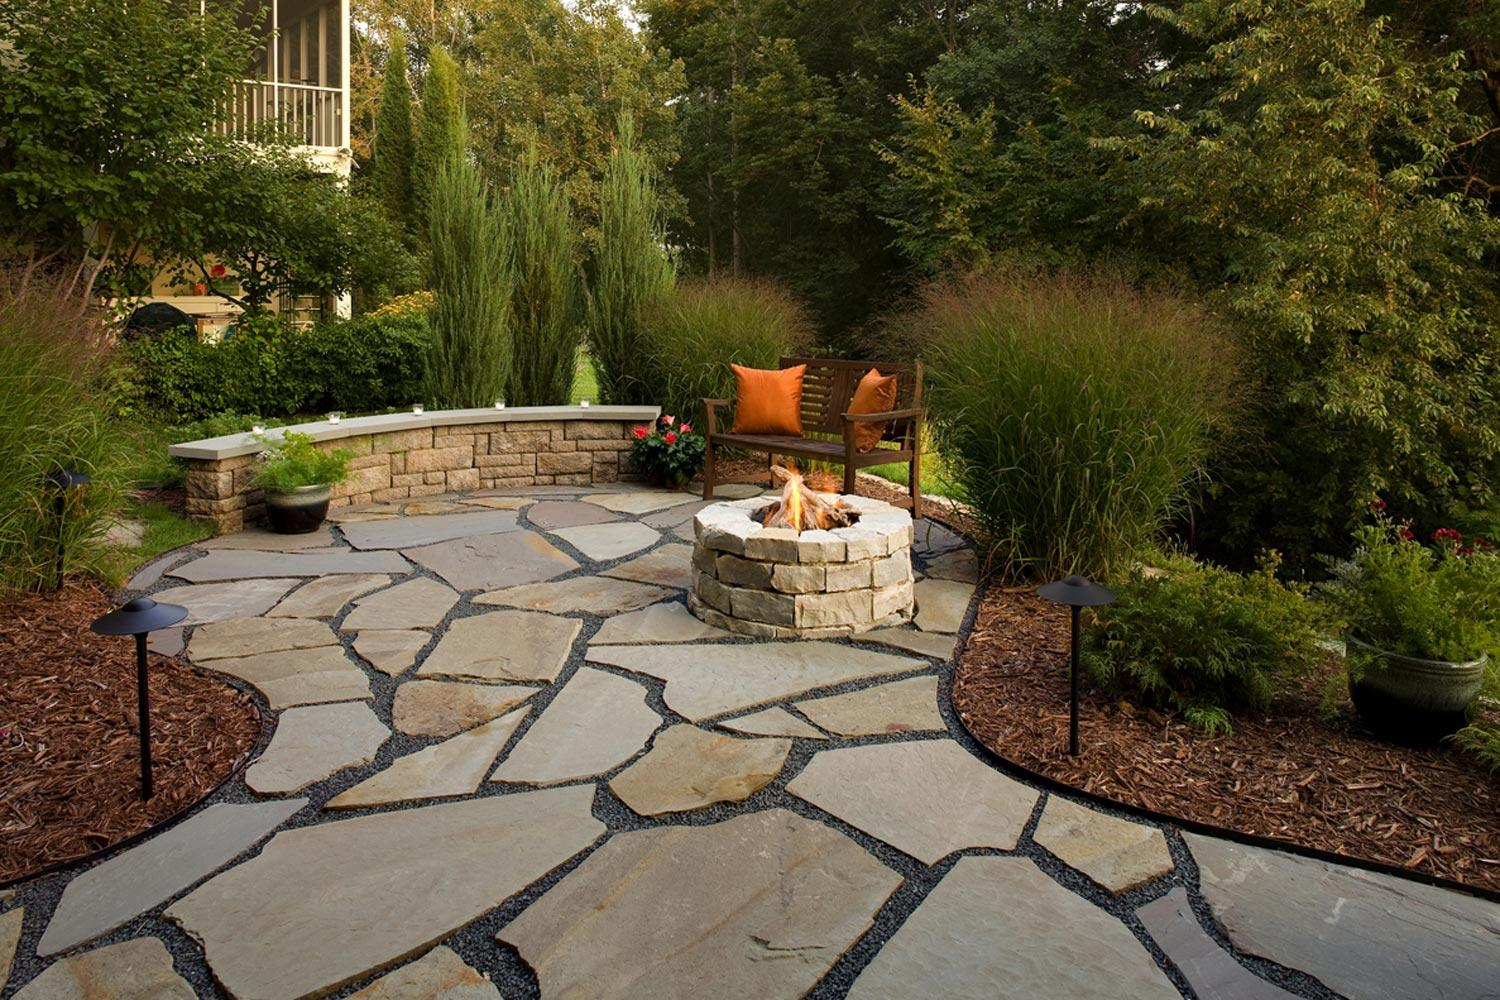 Stone patio and fireplace in Golden Valley, MN backyard landscape